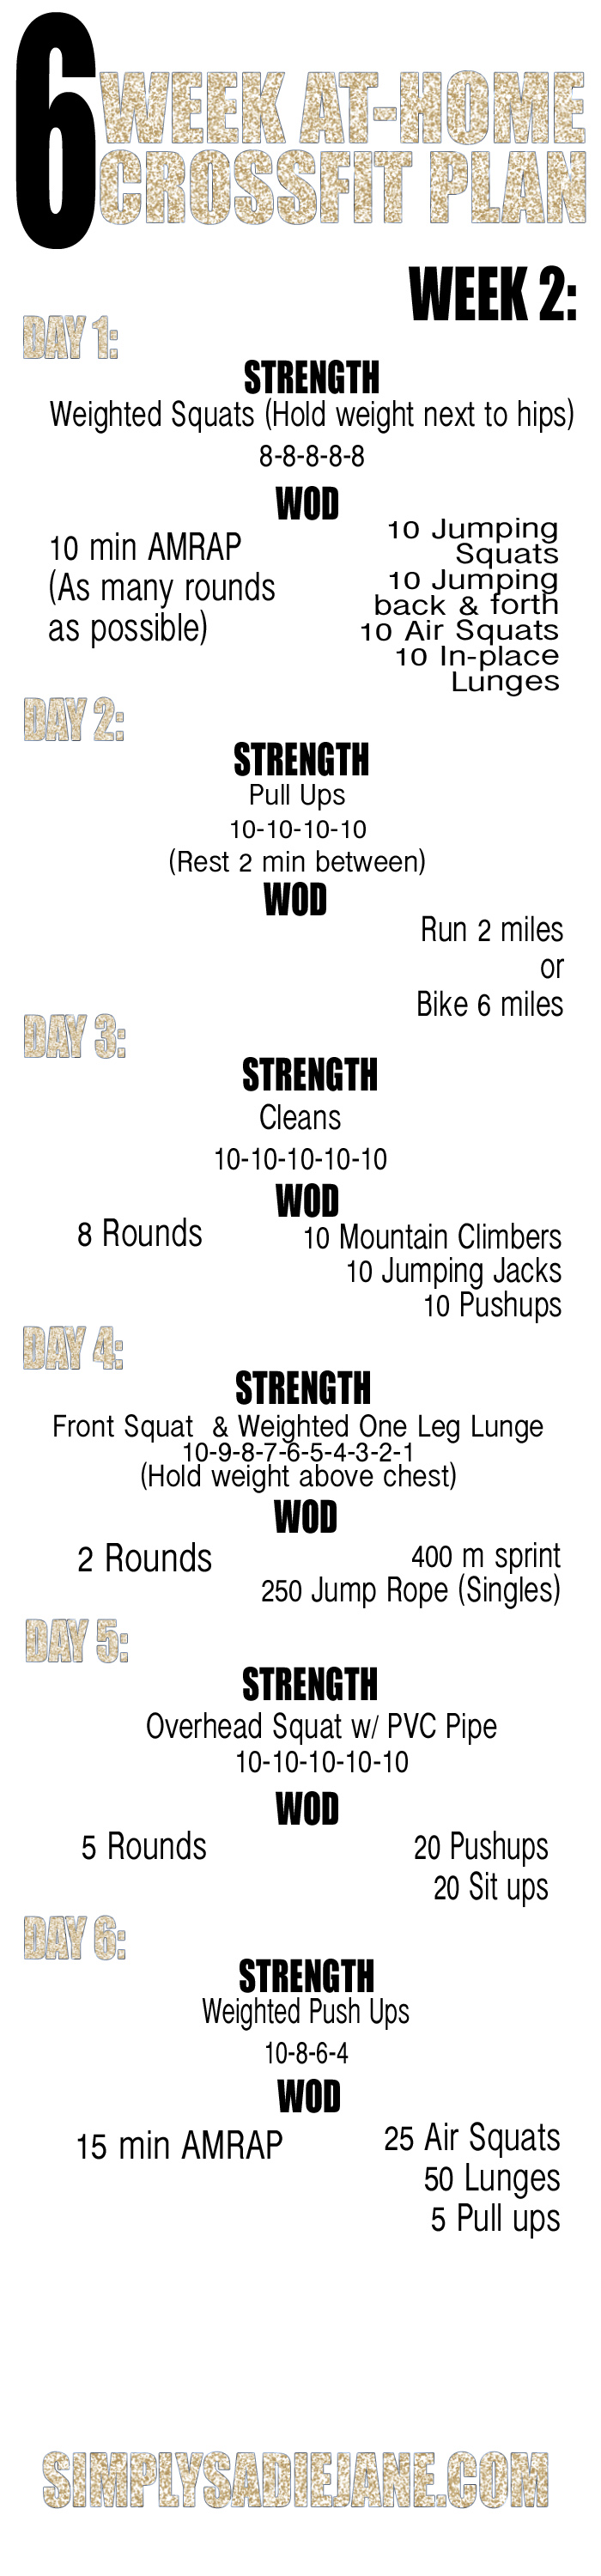 Crossfit Workout Schedule For Beginners Pdf - Most Popular Workout ...